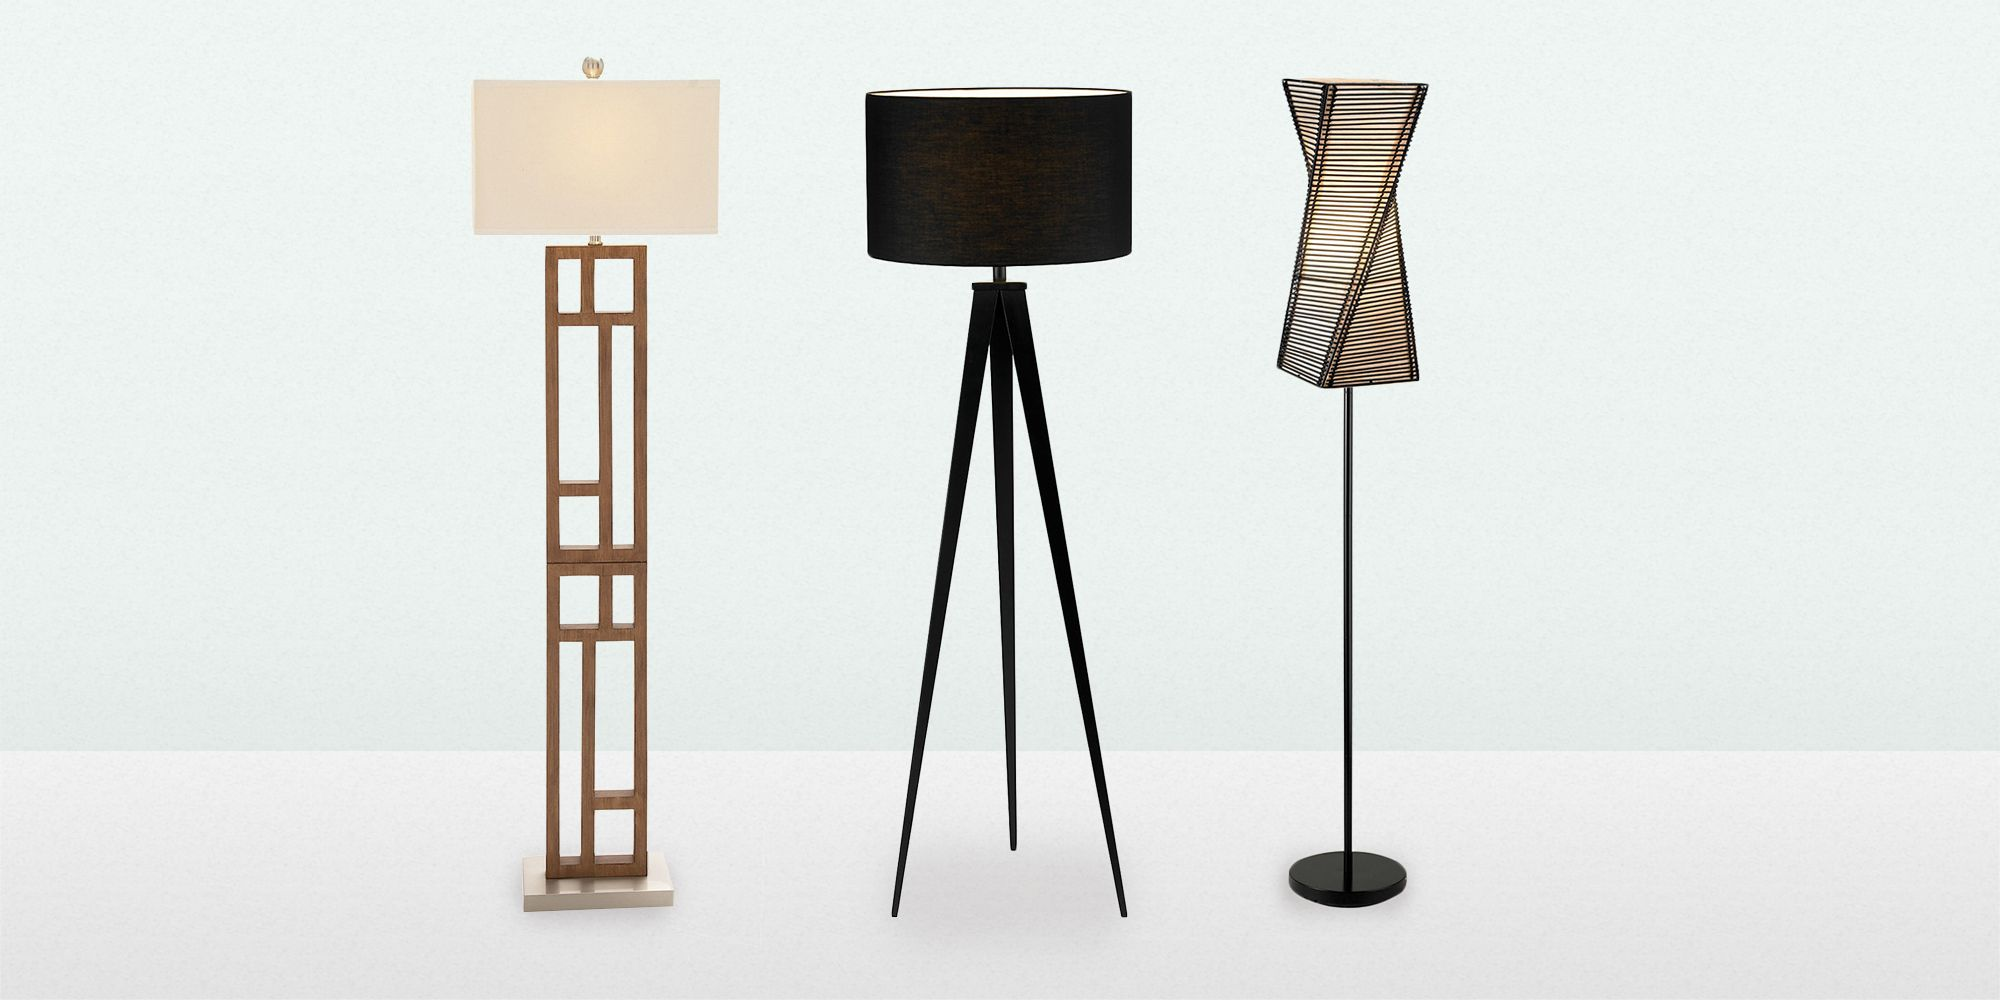 11 Best Standing Floor Lamps in 11 - Modern Floor Lamps for Any Room